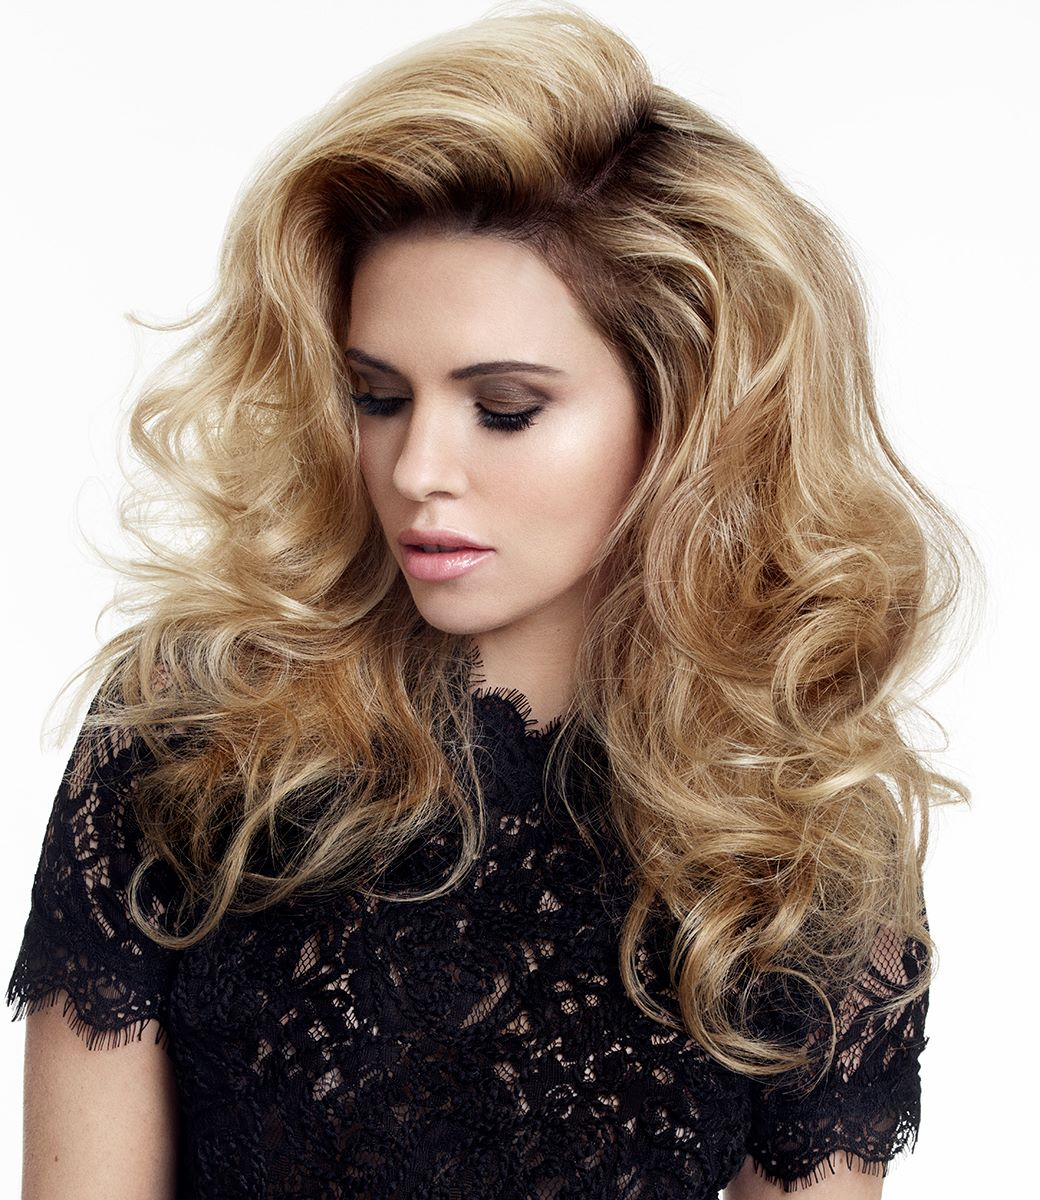 Balmain Hair Uk On Twitter New Year New You Look Your Best In